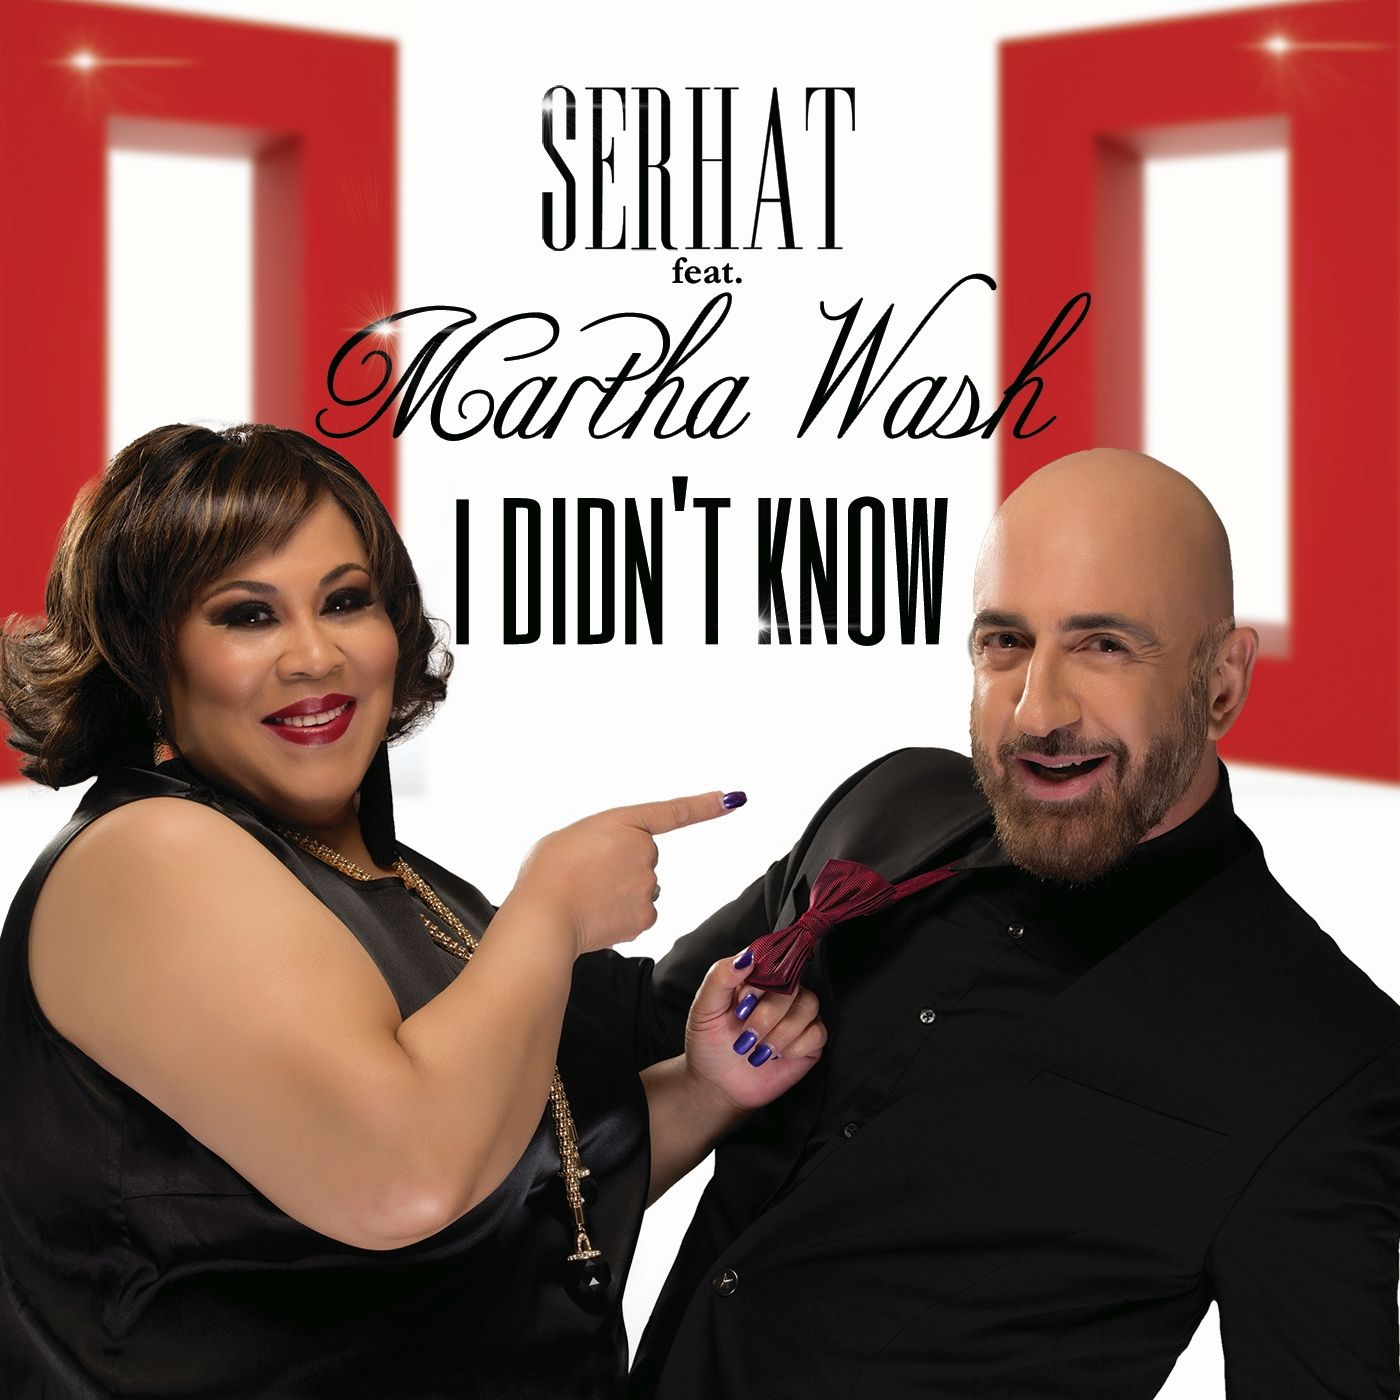 Serhat feat. Martha Wash